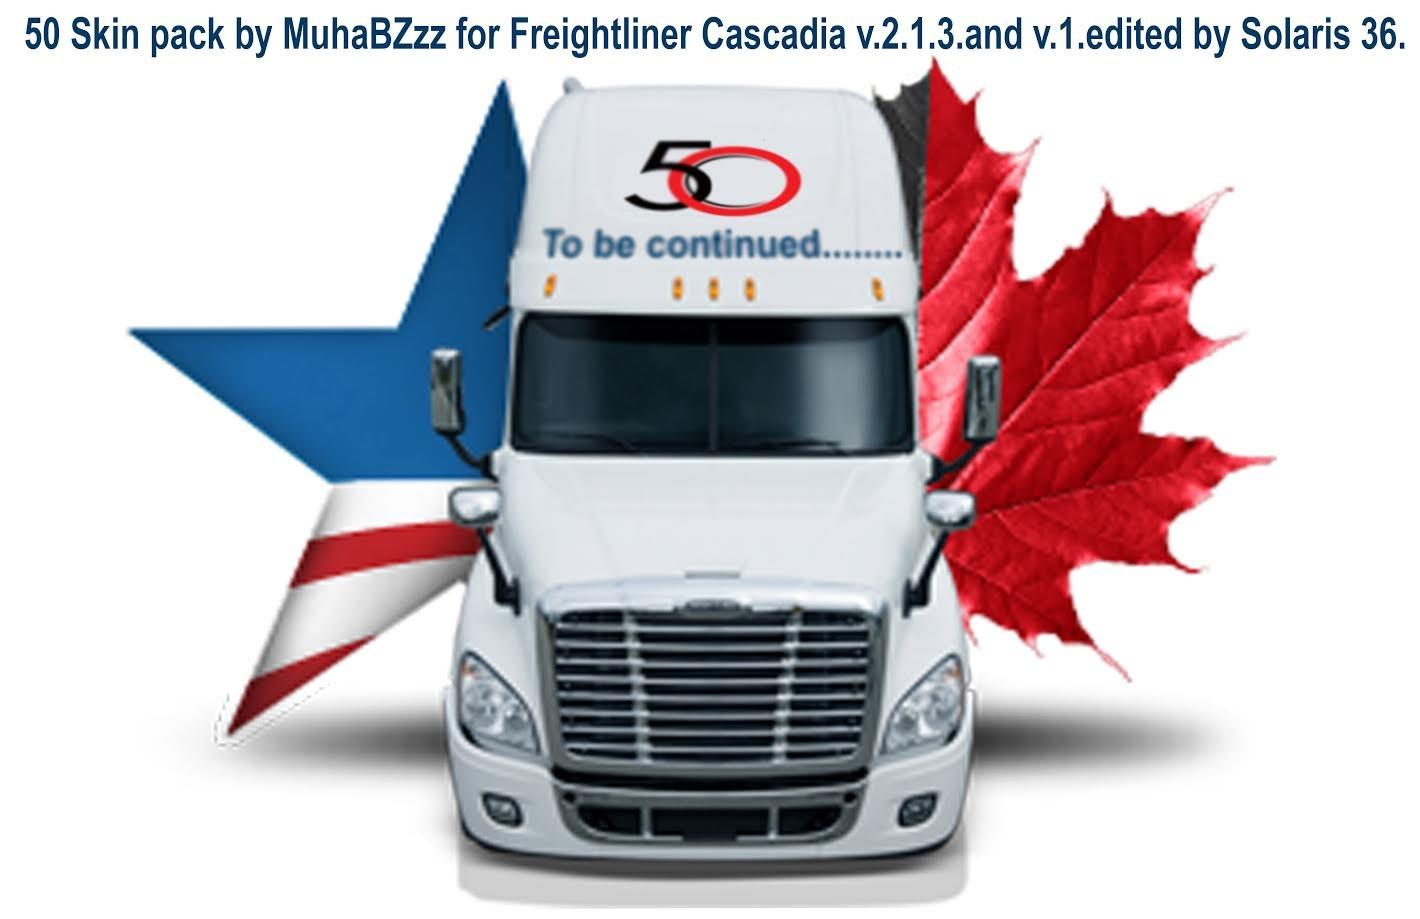 50 Skin Pack for Freightliner Cascadia V2.1.3 edited by Solaris36